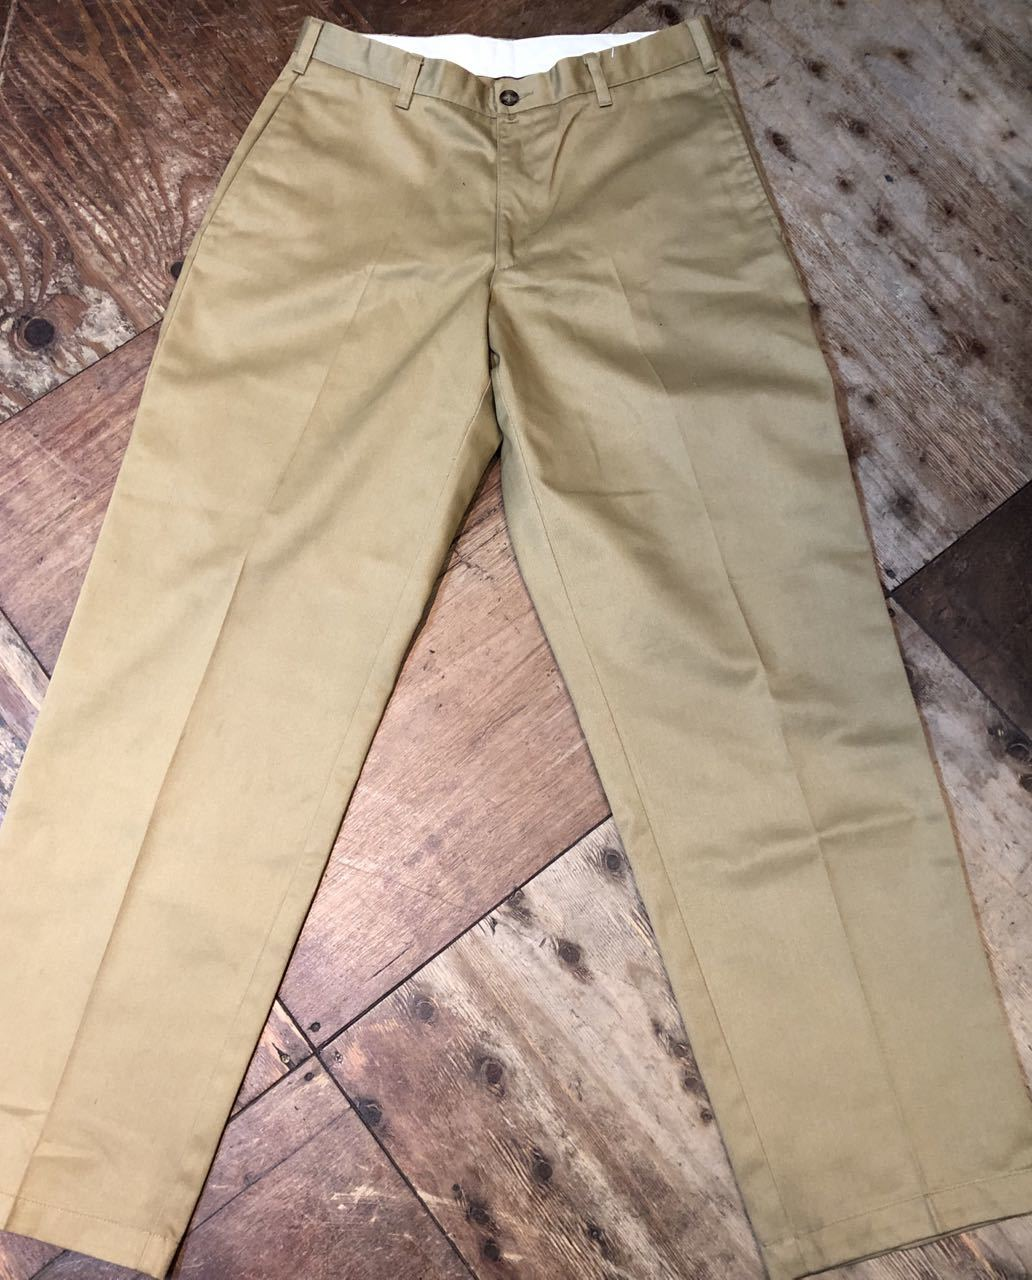 6月23日(火)入荷!L.L bean chino trouthers ! _c0144020_16381221.jpg